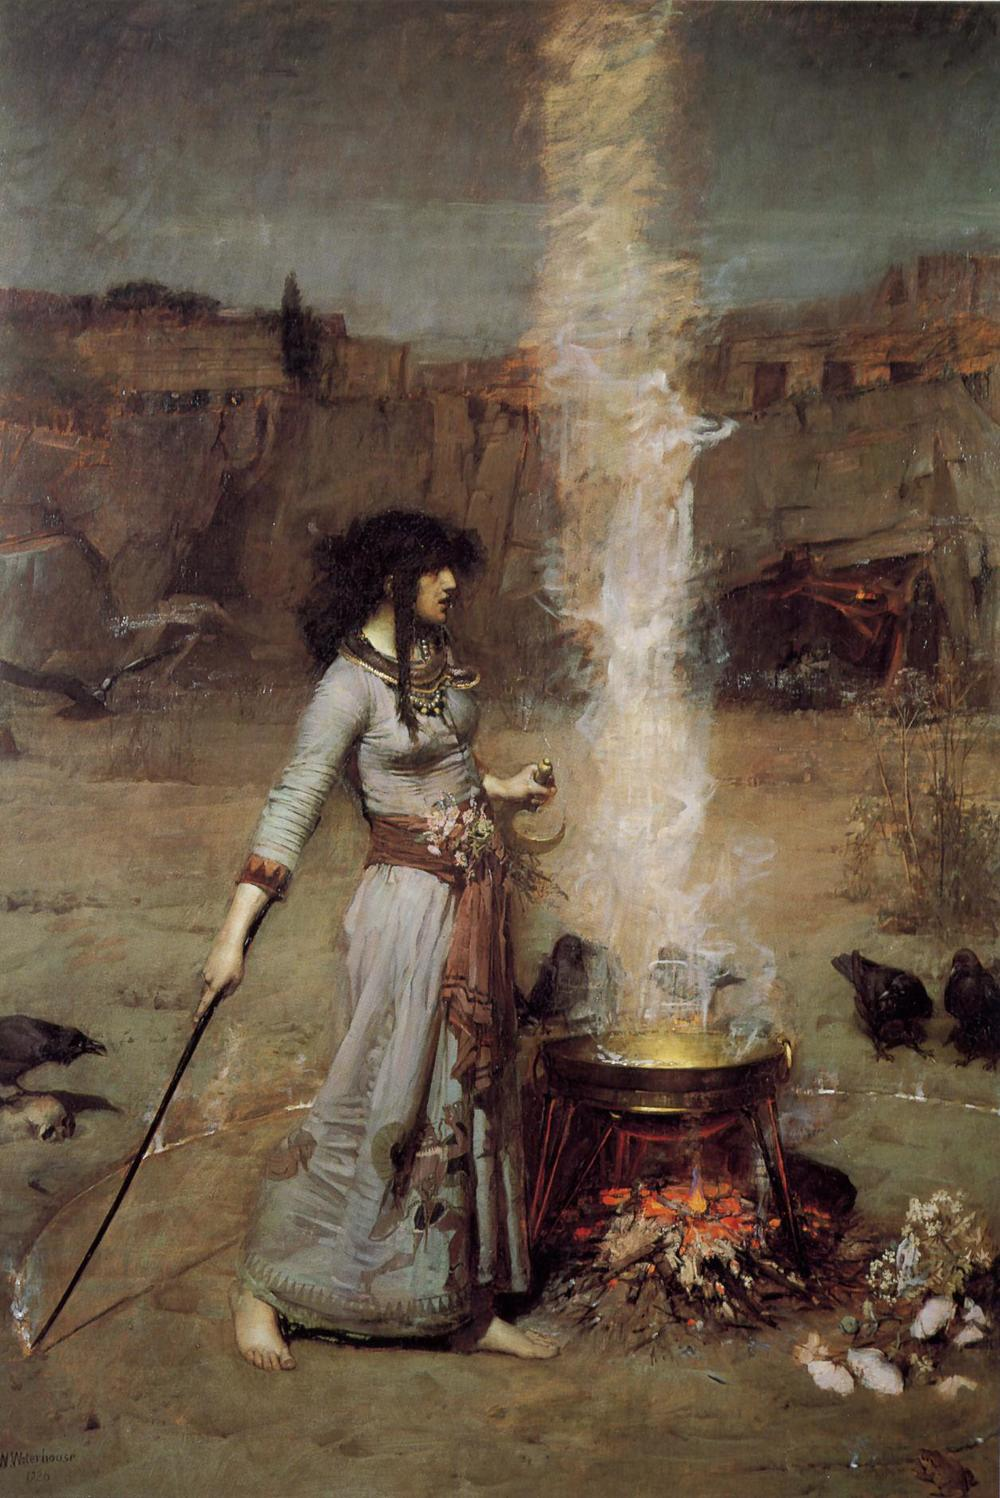 Magic circle by Waterhouse.